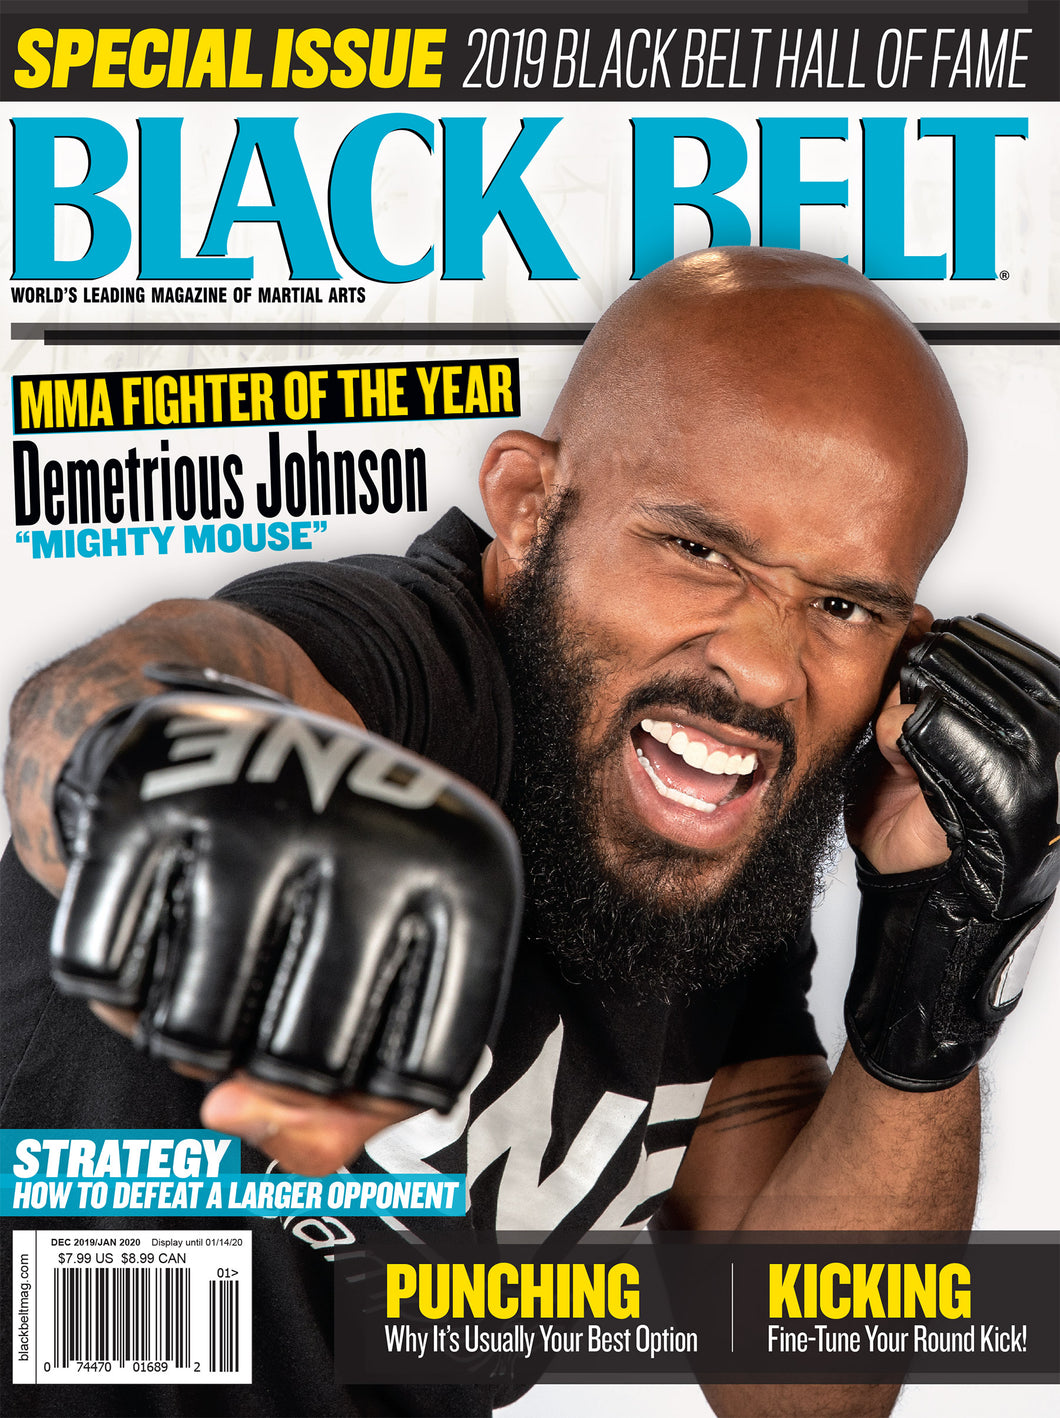 Black Belt Magazine VOL. 58 NO.1